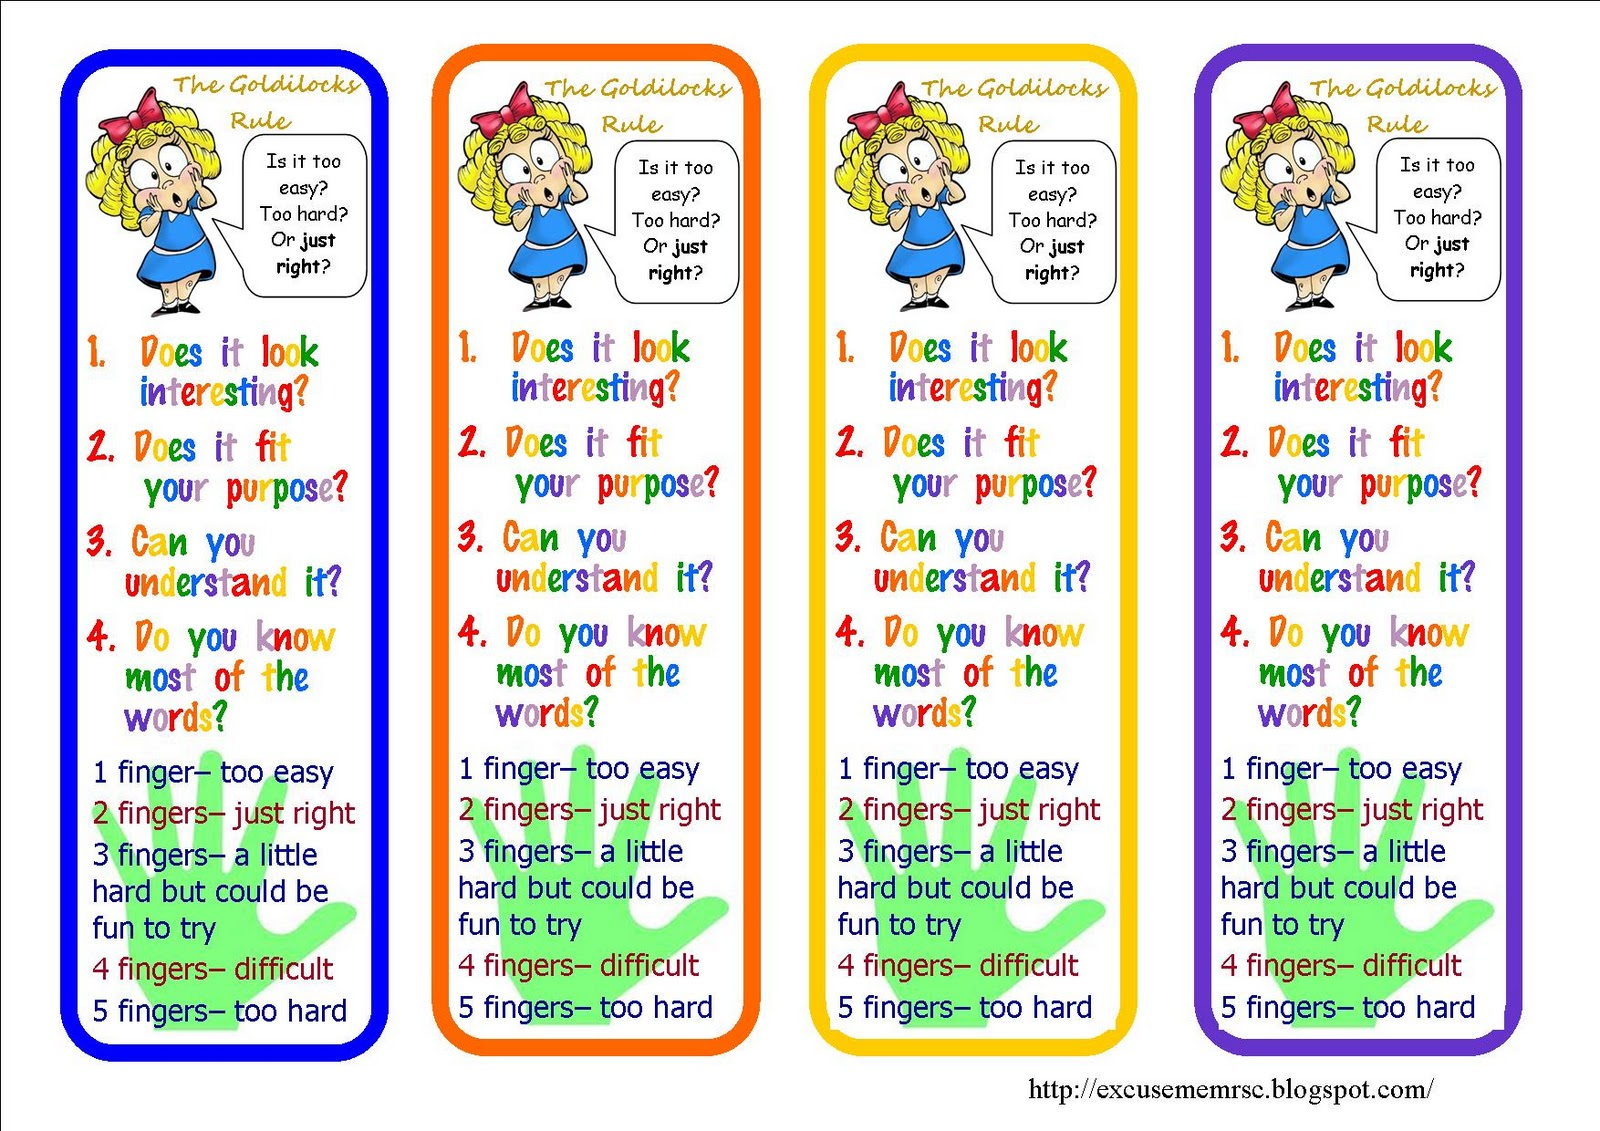 116 best dewey images on pinterest library skills library ideas 116 best dewey images on pinterest library skills library ideas and library lesson plans robcynllc Images